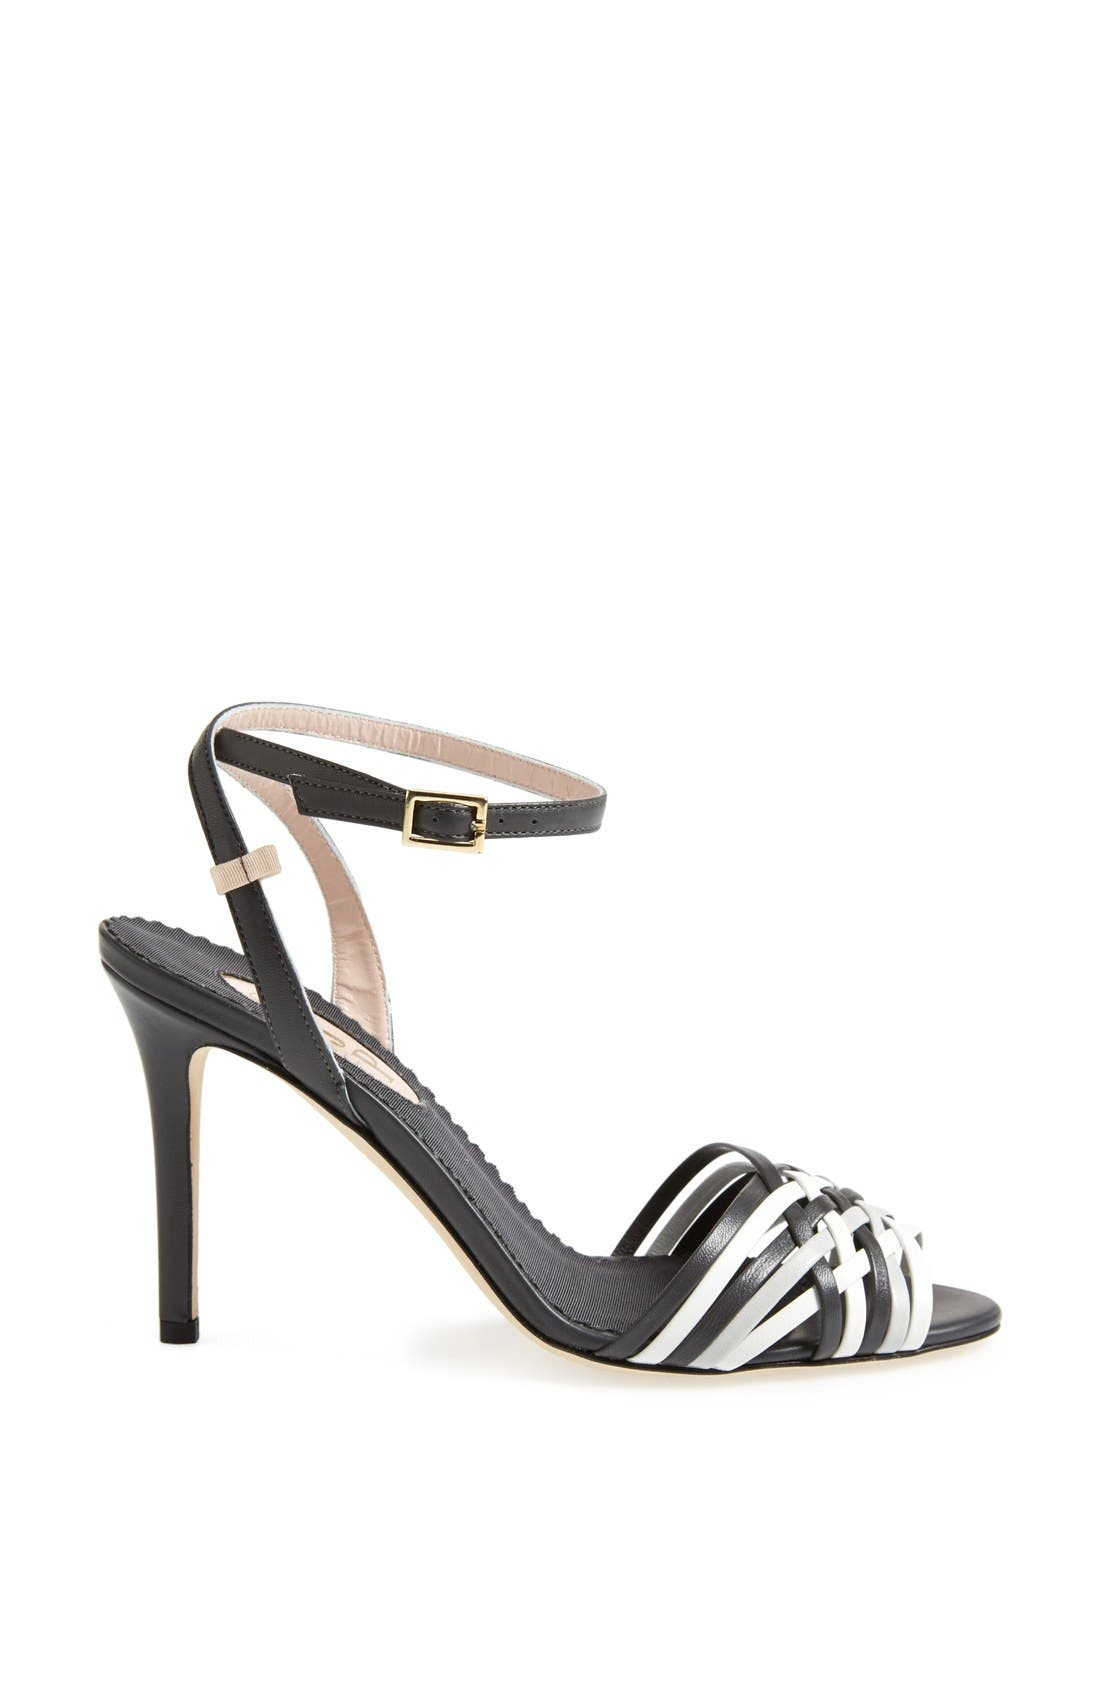 SJP 'Maud' Sandal,                             Alternate thumbnail 2, color,                             001